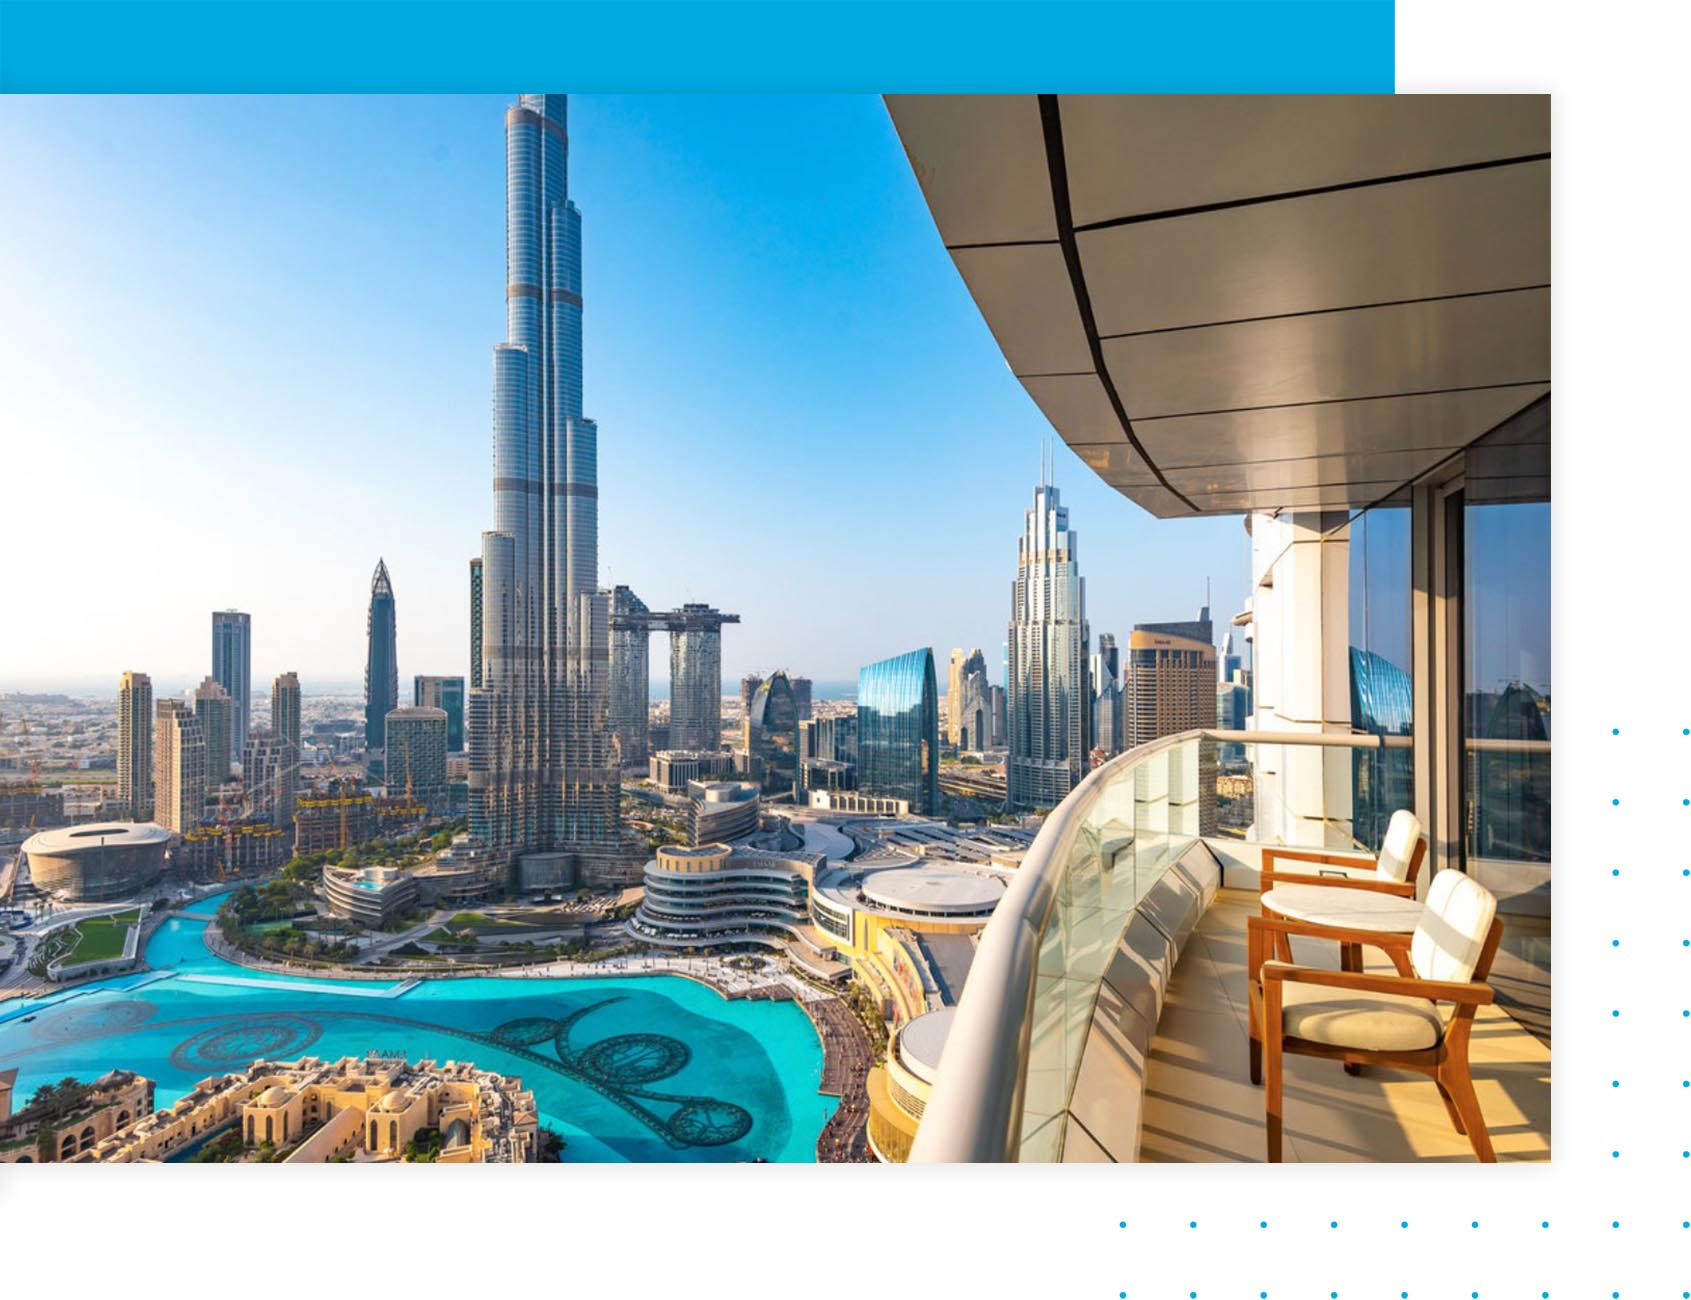 The Most Popular Types of Real Estate in Dubai